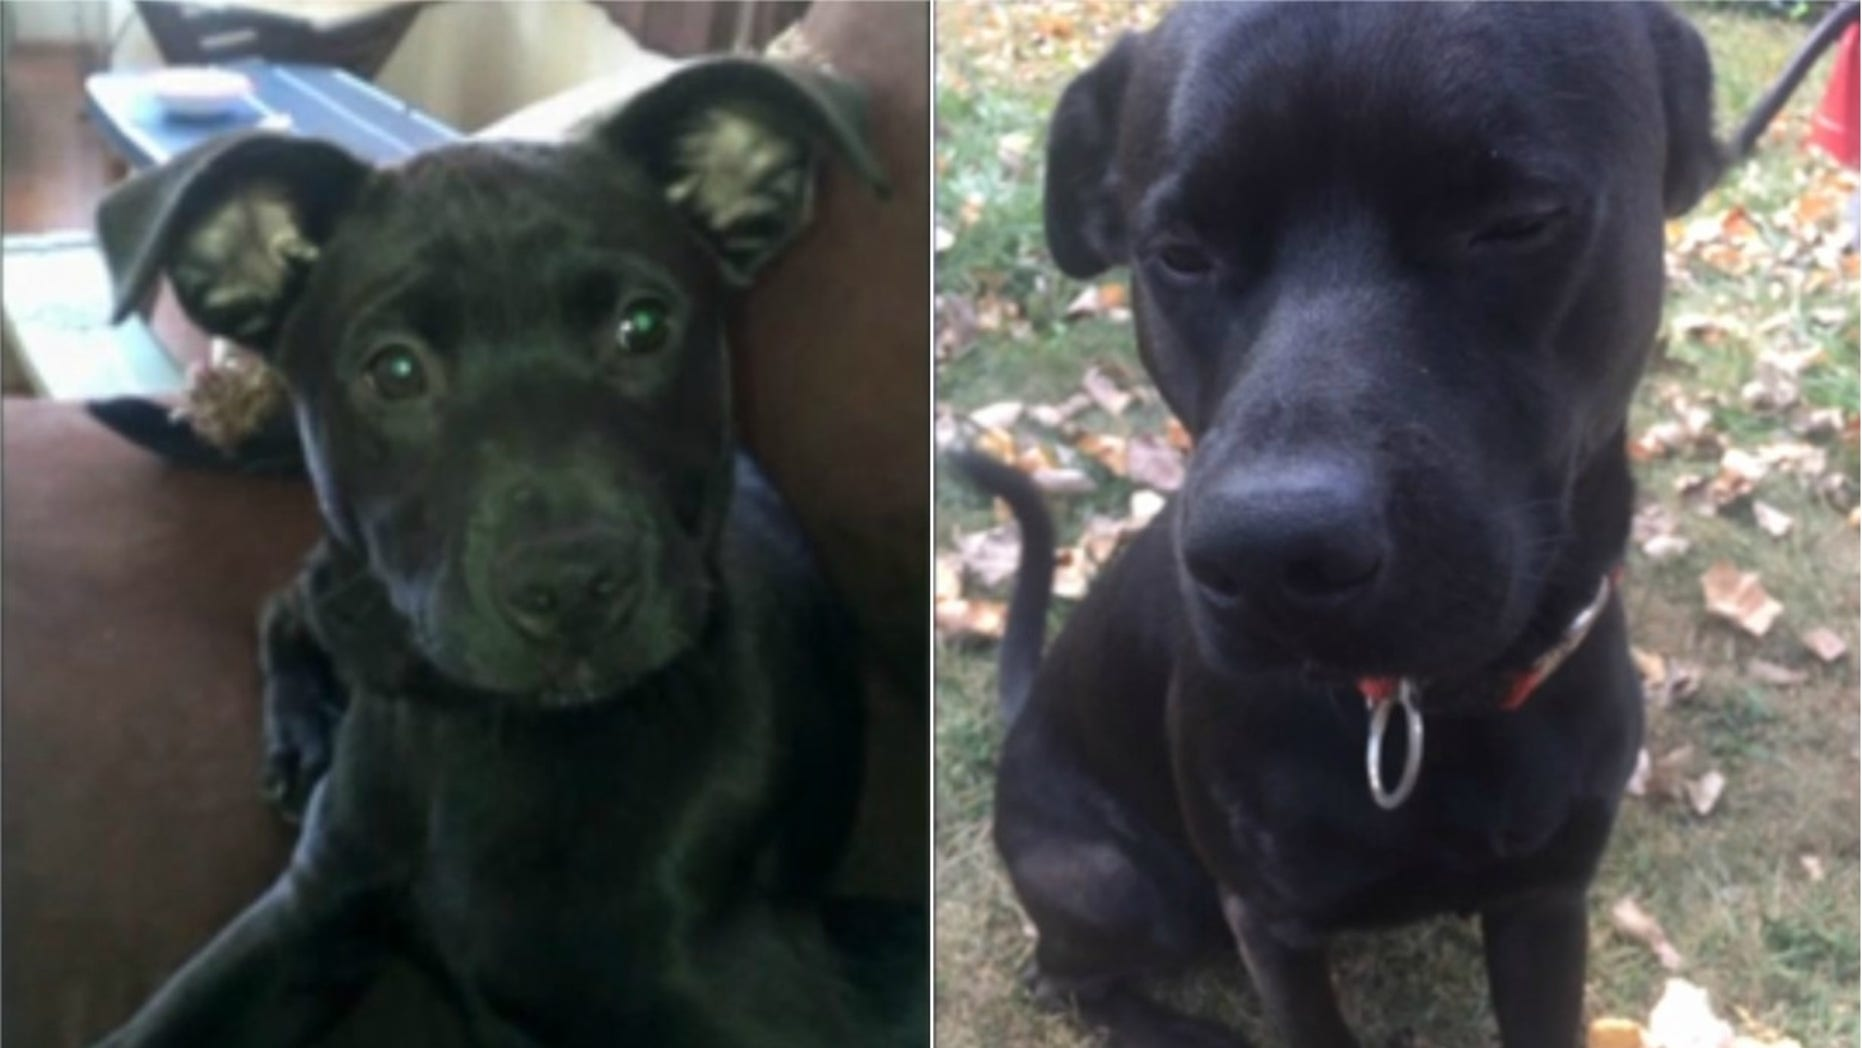 Harley, a two-year-old Labrador Retriever mix puppy, was found dead along the railroad tracks in Ohio (Photo: Fox 8 Cleveland)